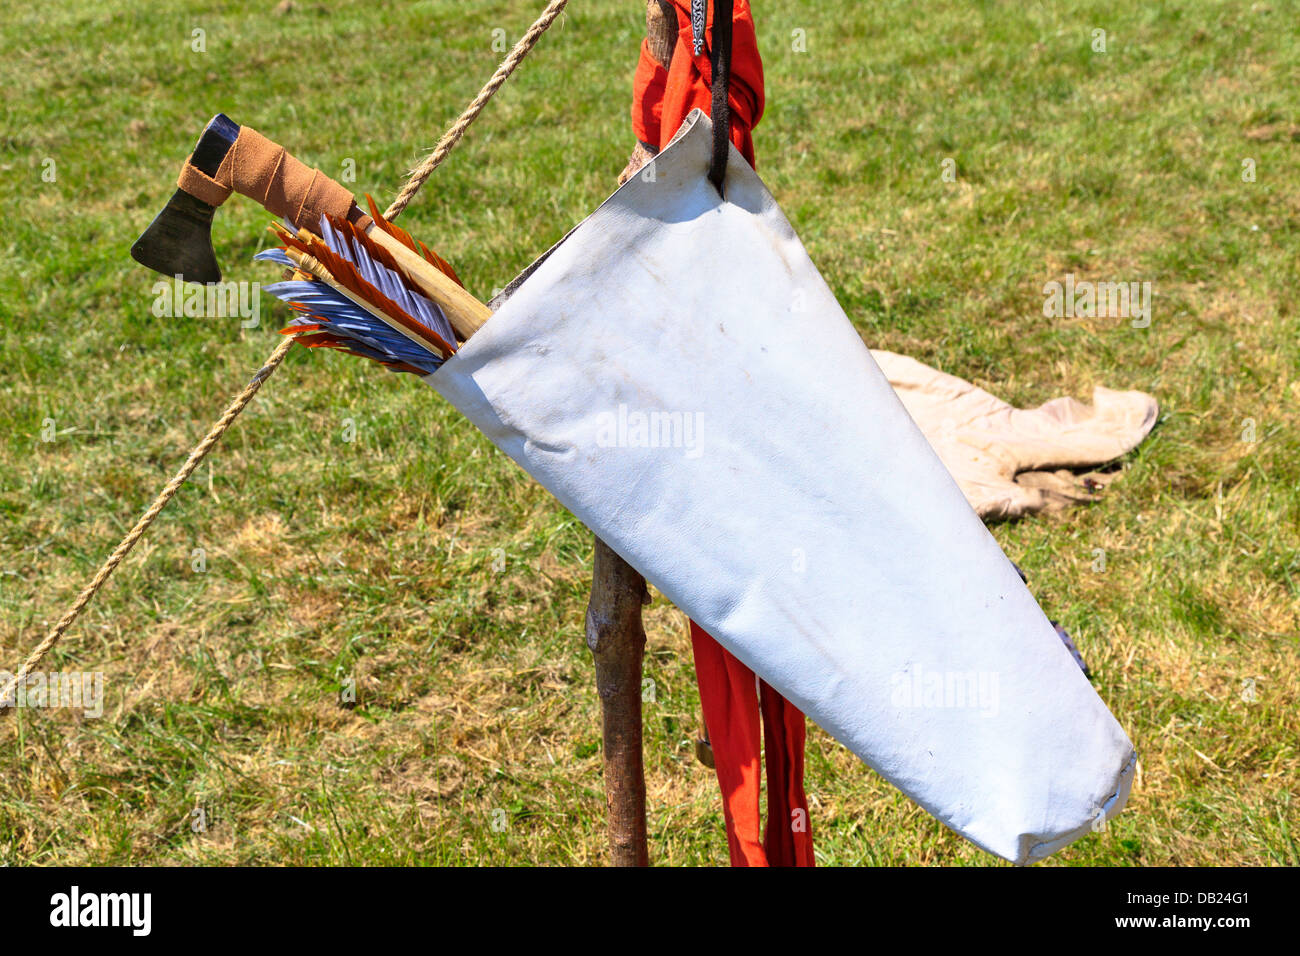 Viking axe and arrows in leather bag for hunting, sports and warfare at Flag Fen Archaeological Park, Peterborough, - Stock Image